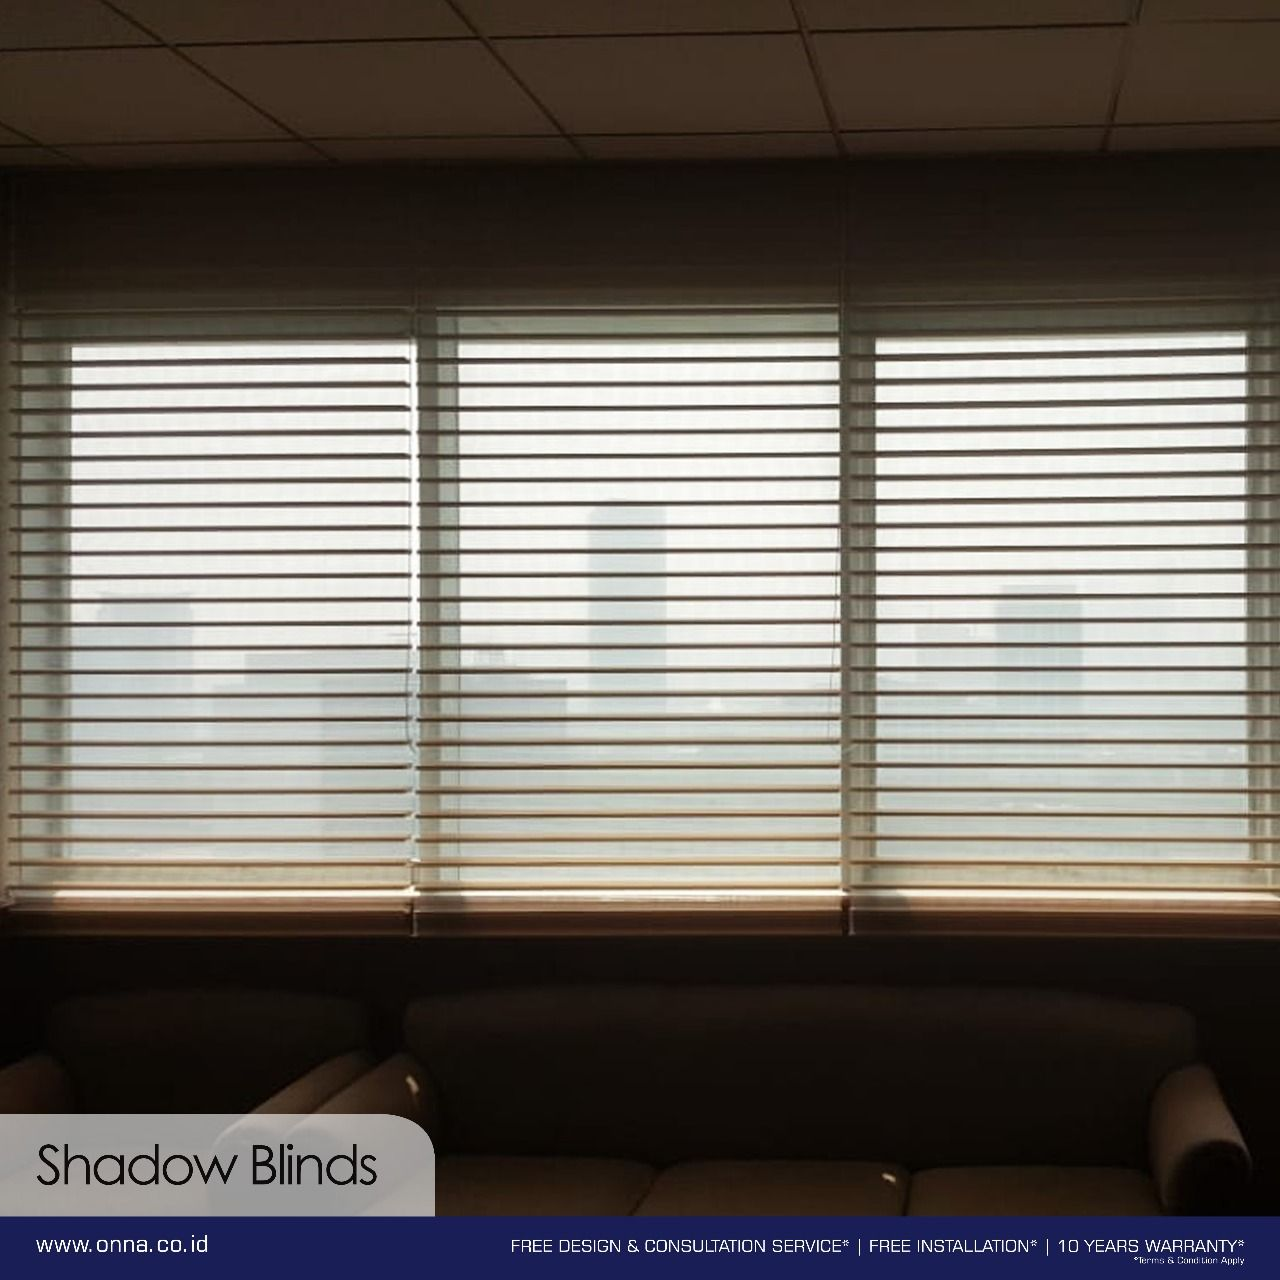 Shadow Blinds Is A Combination Of Horizontal And Roller Blinds